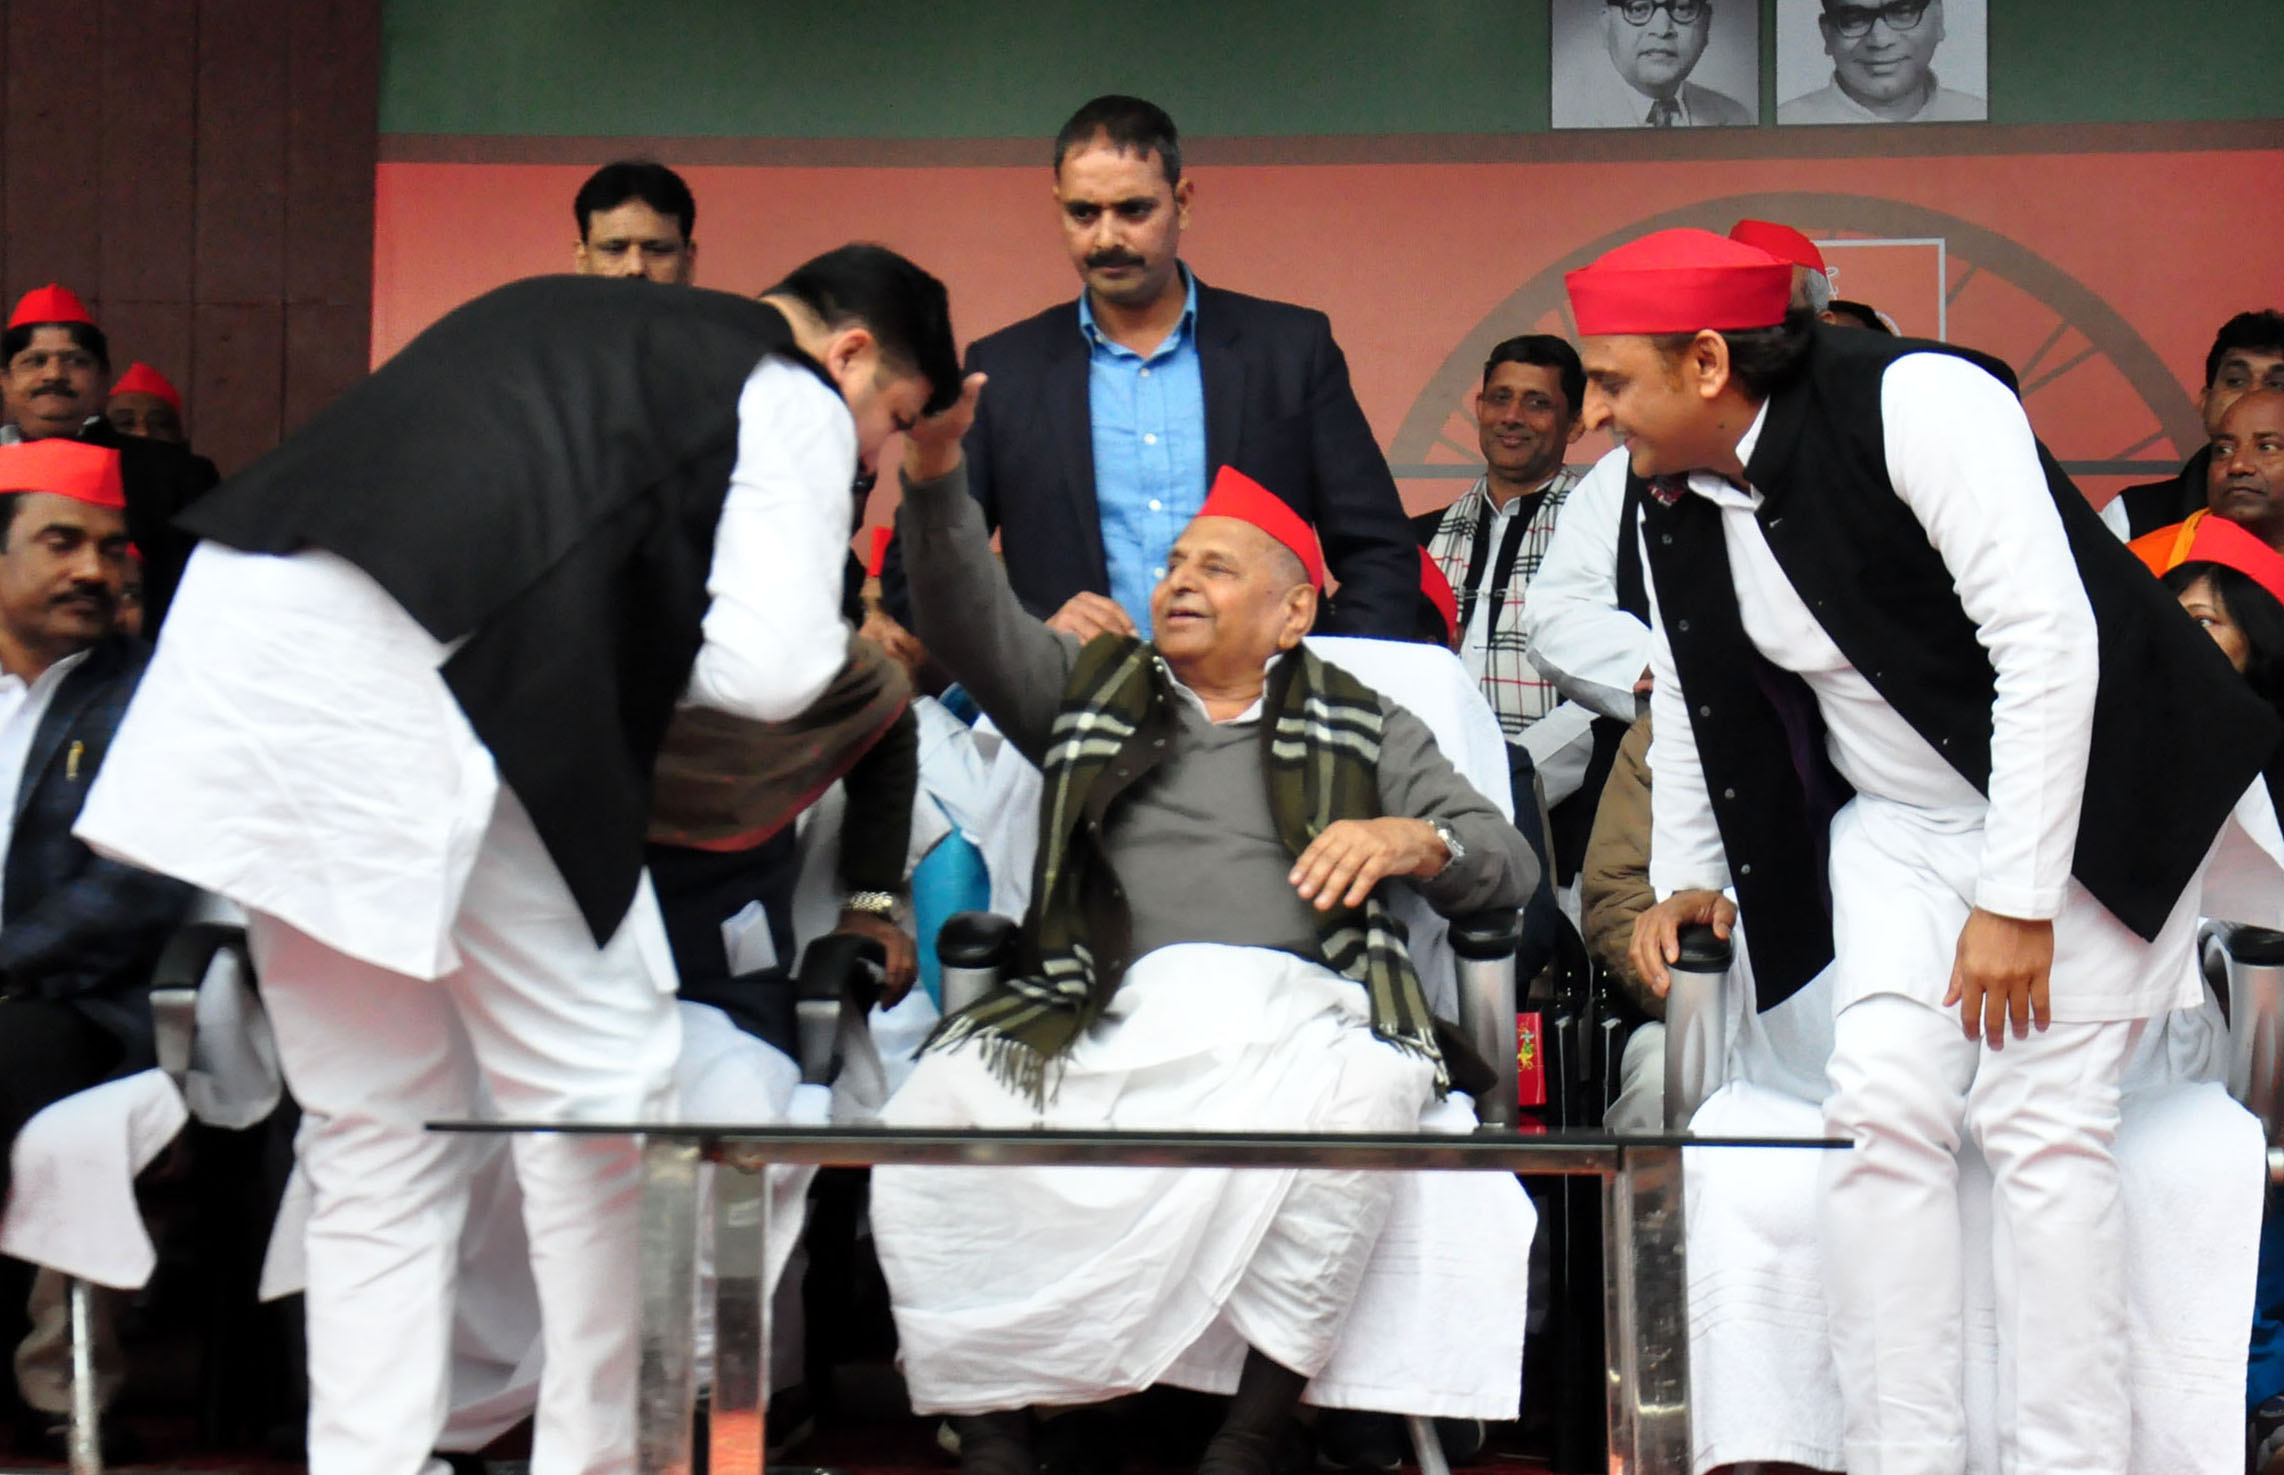 Former Chief of Hindu Yuva Vahini Sunil Singh bleassing from Mulayam Singh Yadav (Samajwadi Party founder) during join-membership programme at party office in Lucknow on Saturday. (UNI)